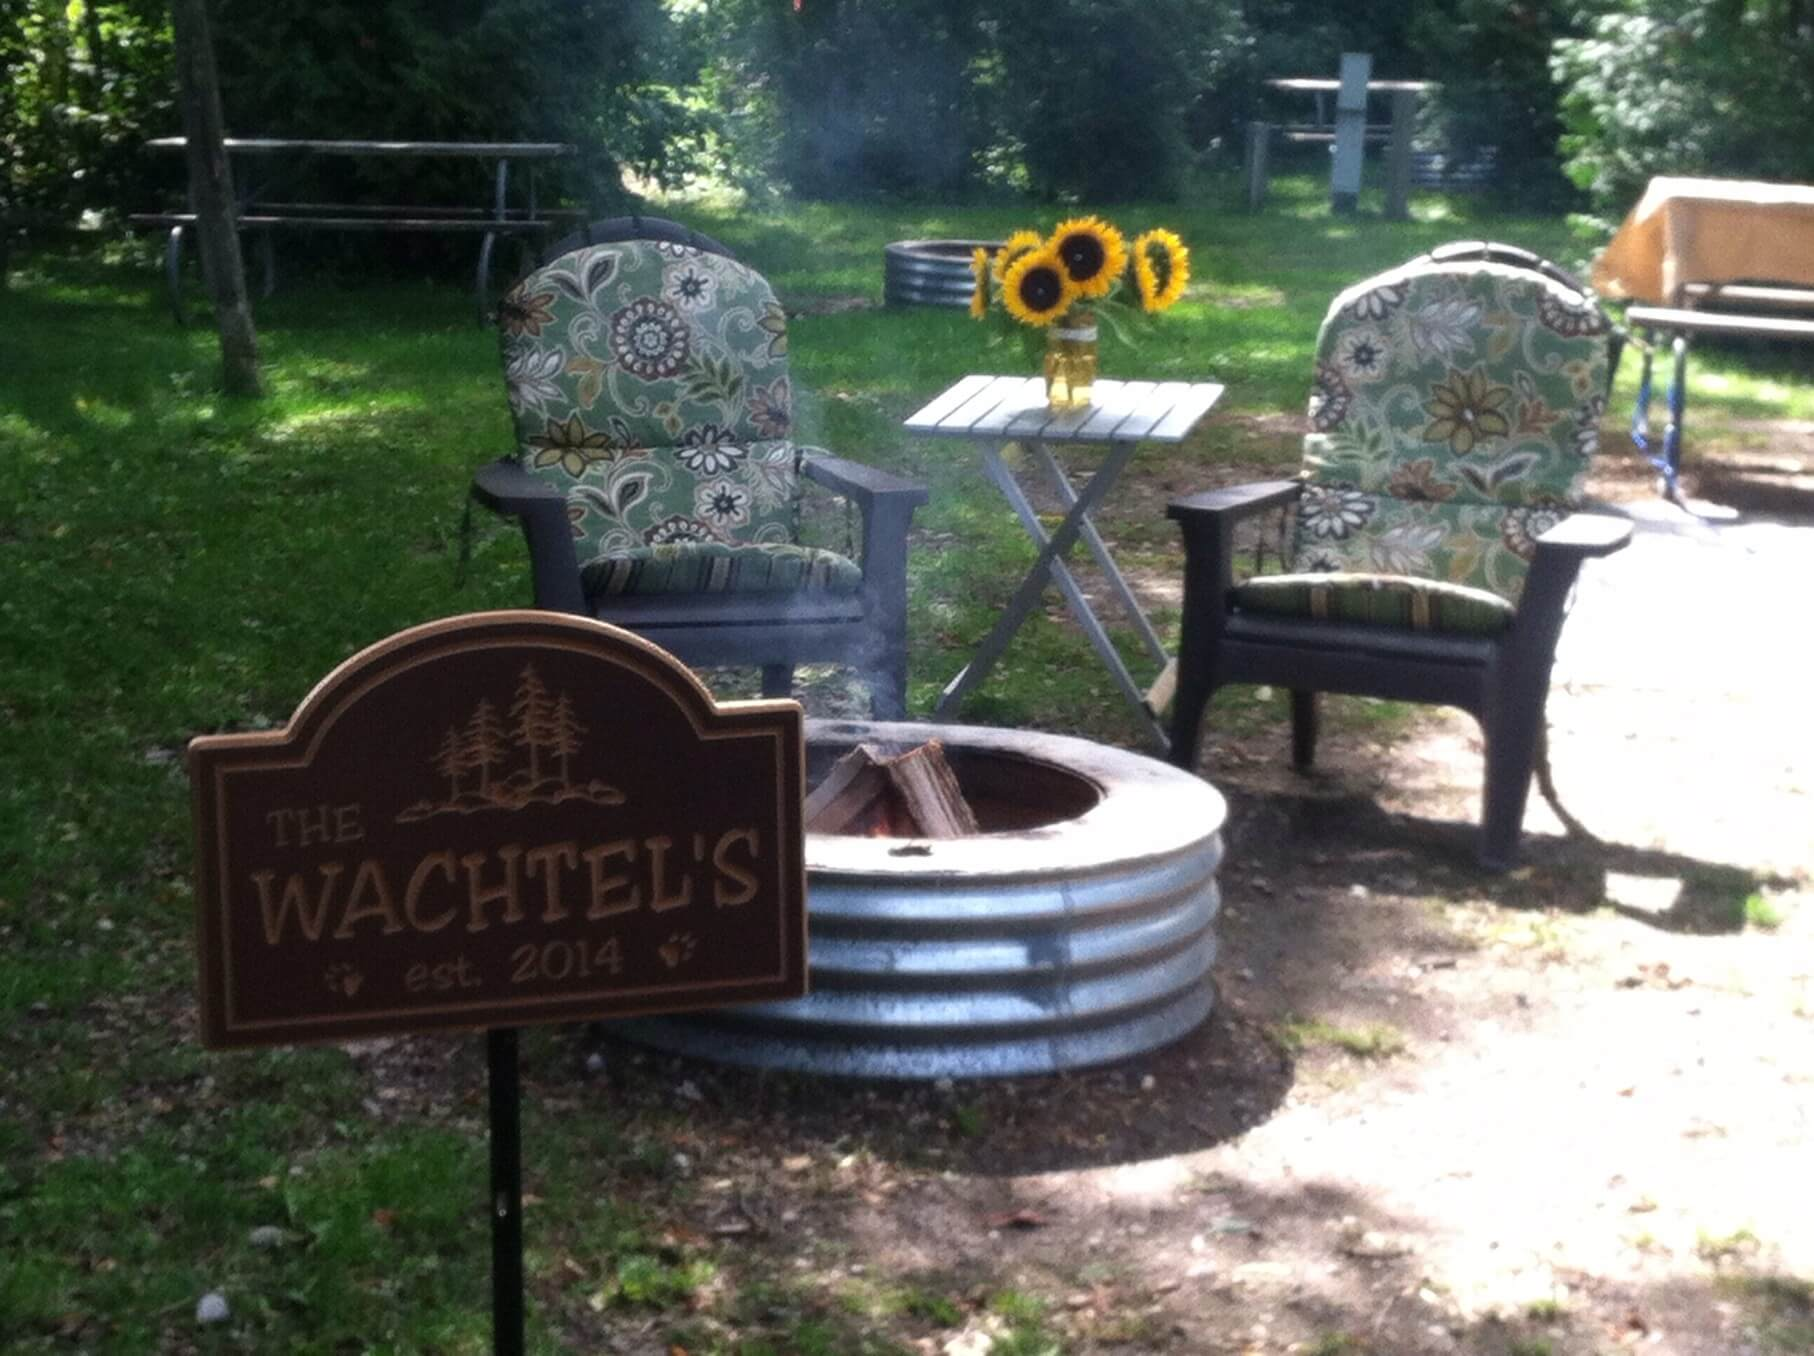 Photo of campsite by Scott and Crystal Wachtel at Mackinaw Mill Creek Camping in Mackinaw City, MI.